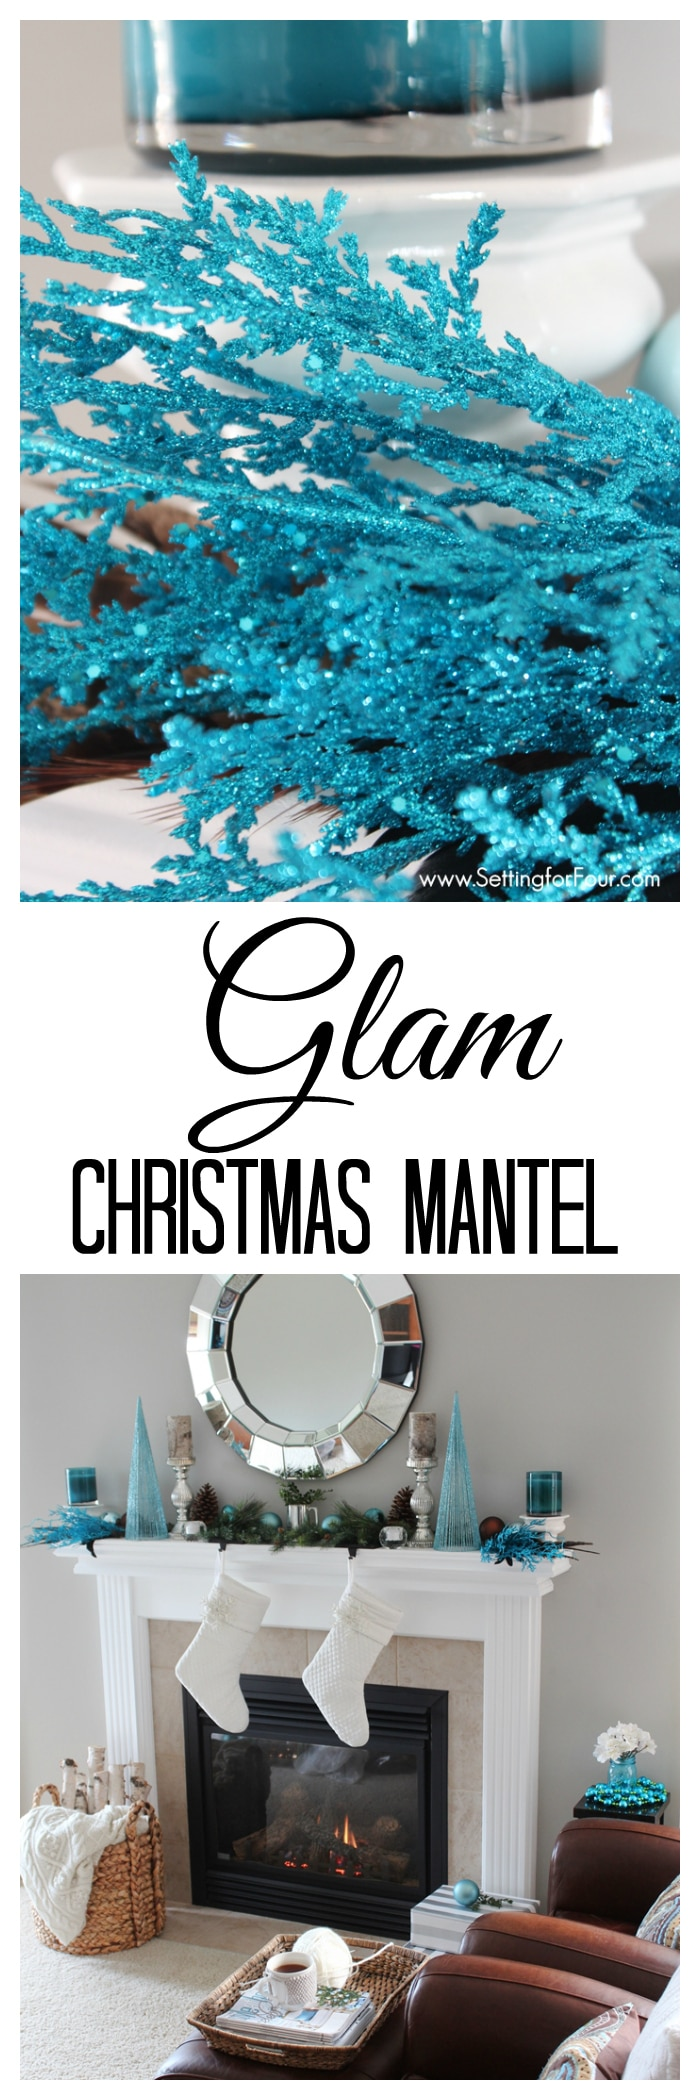 Glam Christmas Mantel Decor Ideas - see how I decorated my mantel with glitter, shimmer and shine! | www.settingforfour.com